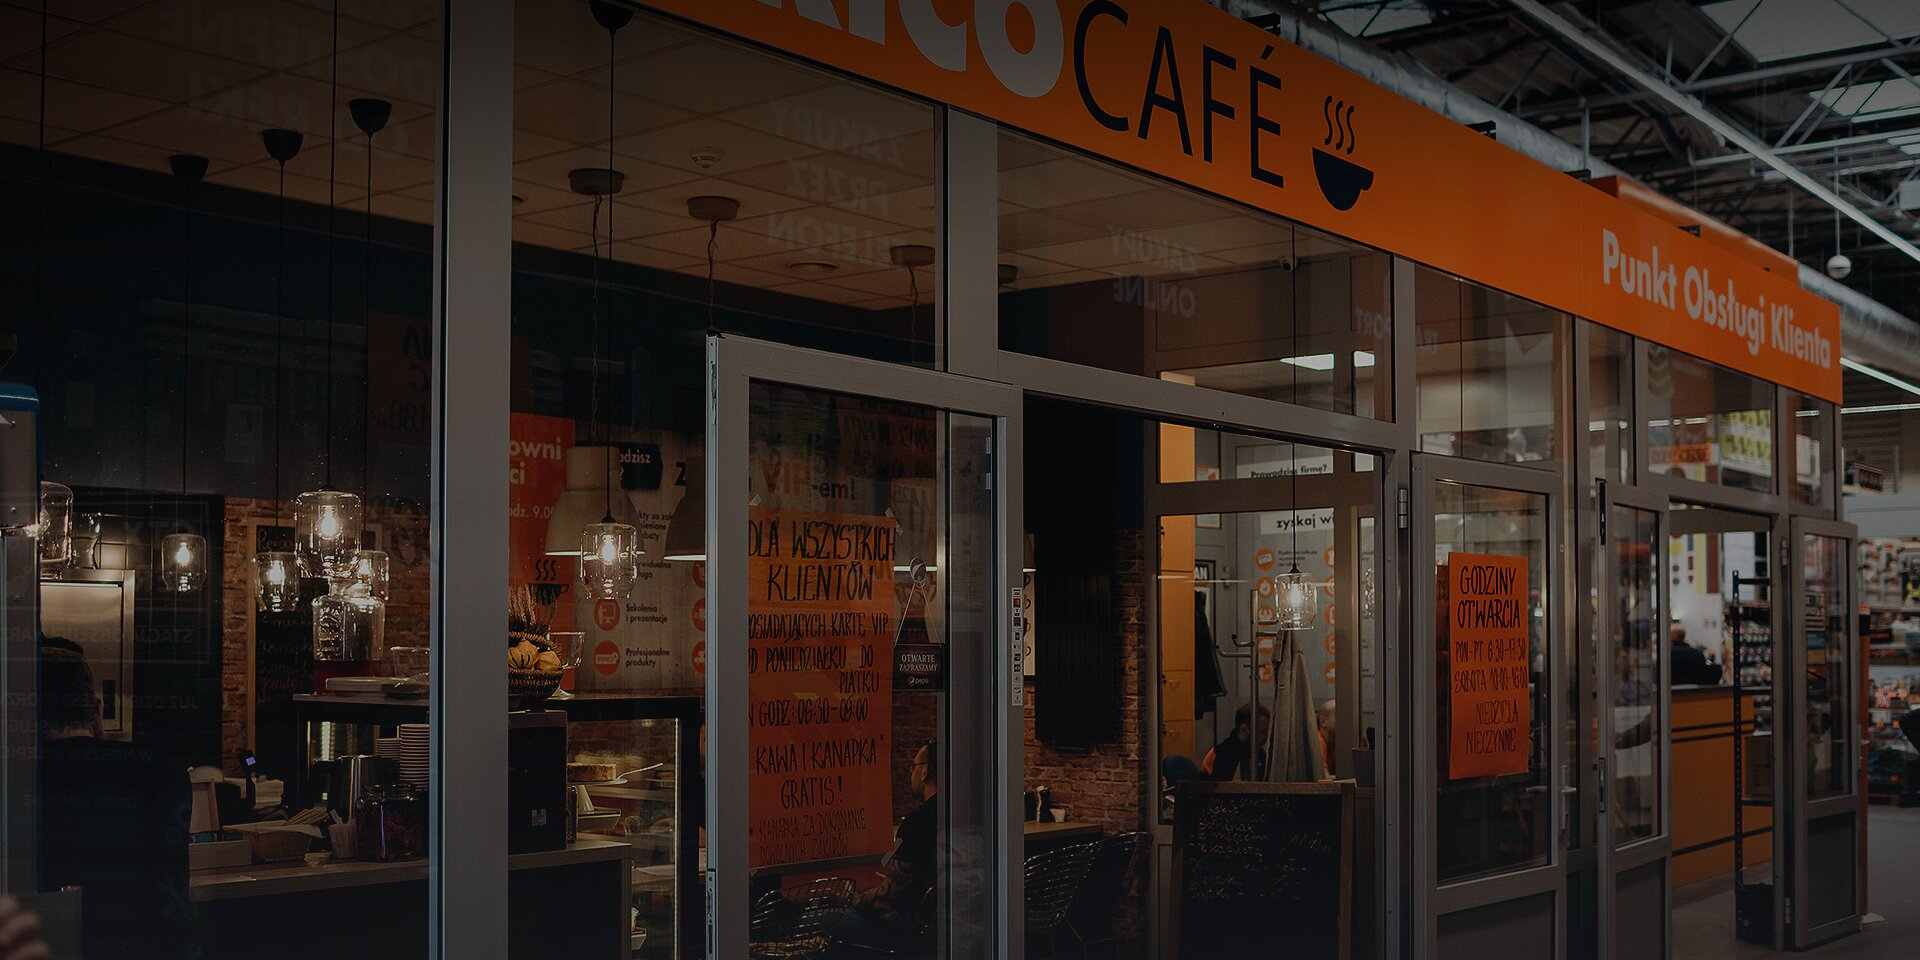 Brico Cafe <small>Food & Cafe</small>